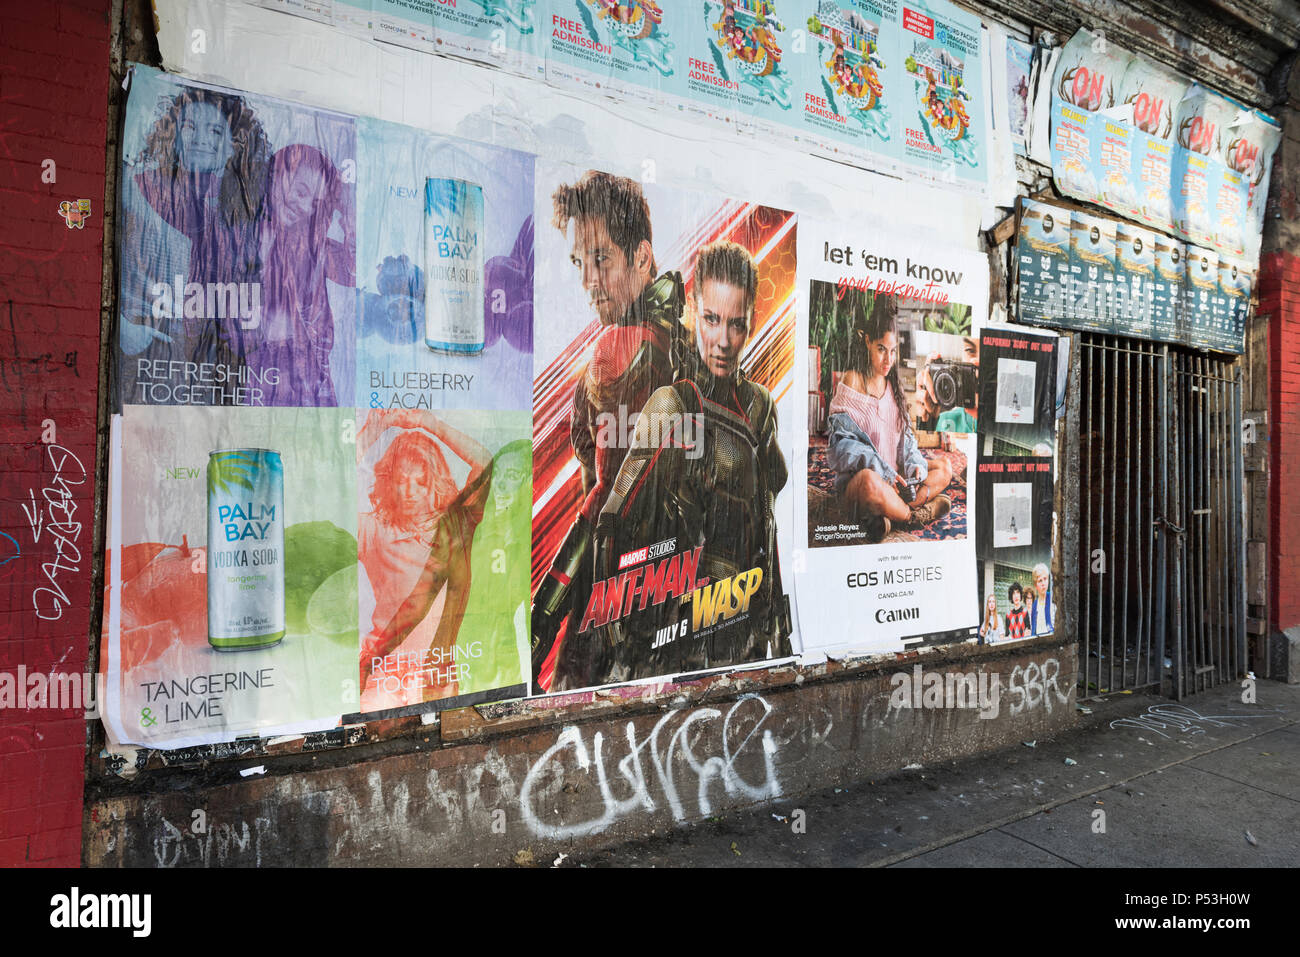 Bill posted on an old derelict building advertising of various products and events, Vancouver, BC - Stock Image